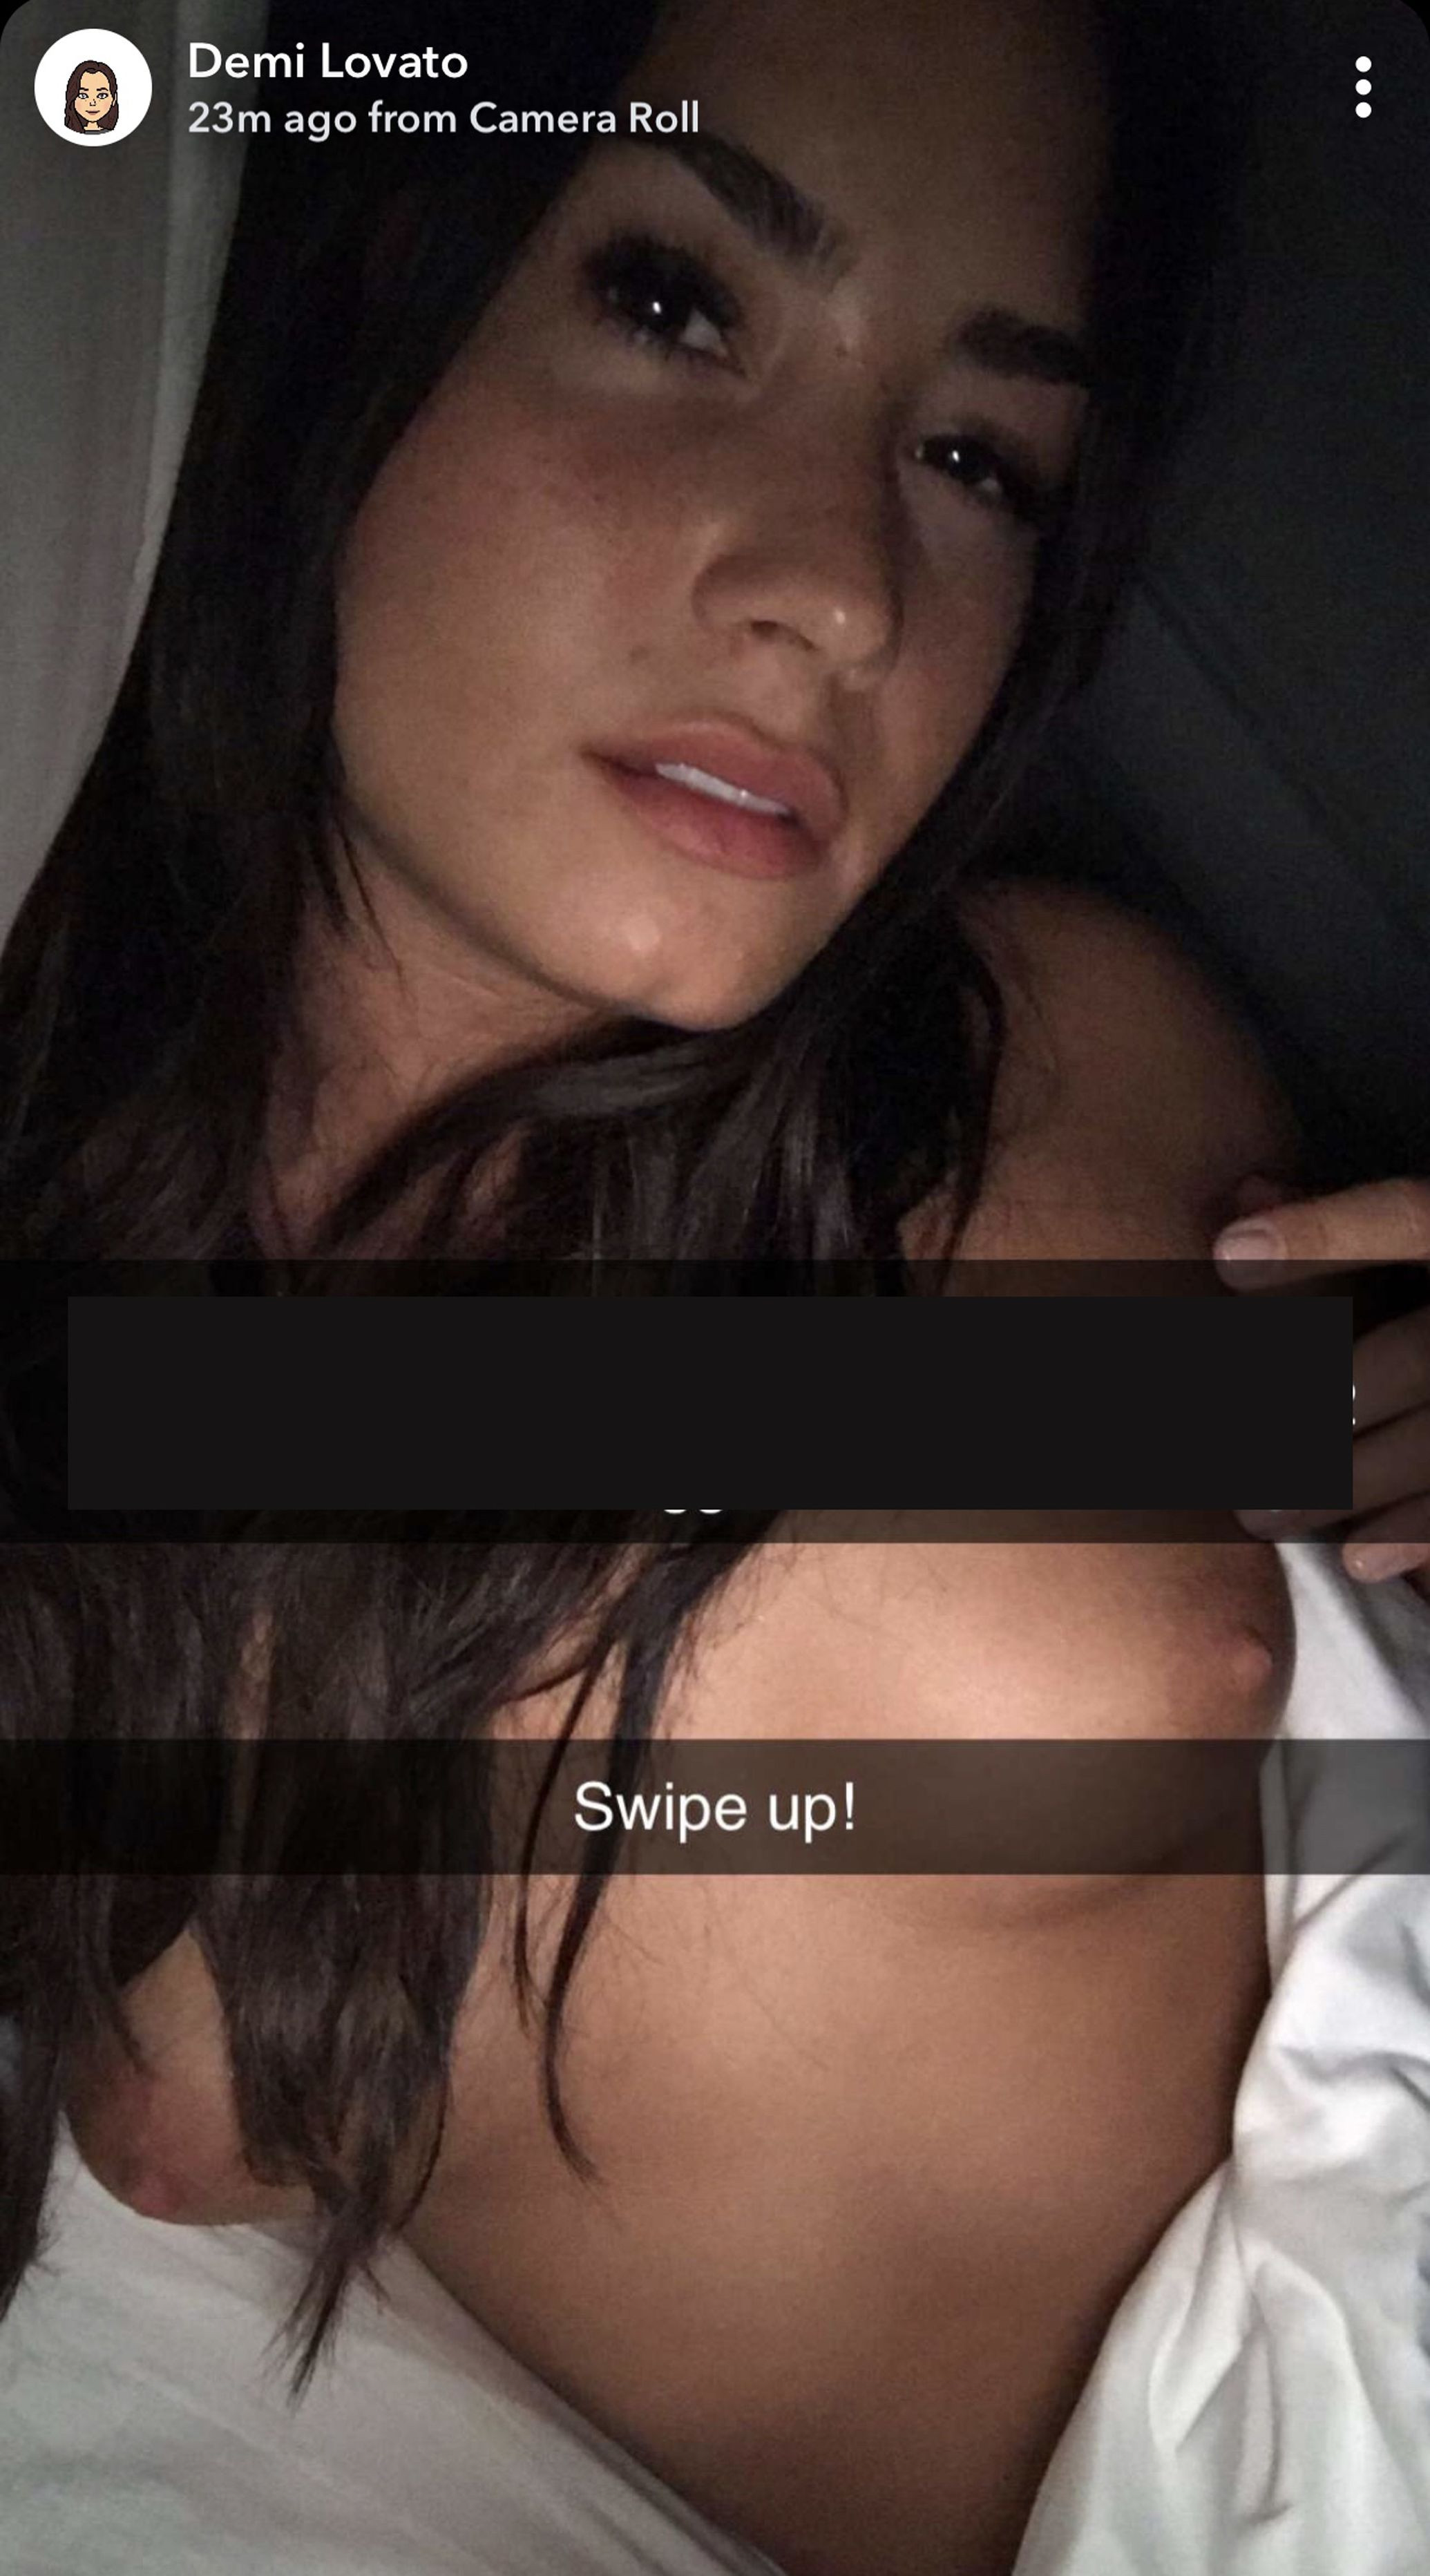 Demi Lovato Nude Leaked TheFappening.nu 160b3807c1076f19a.jpg